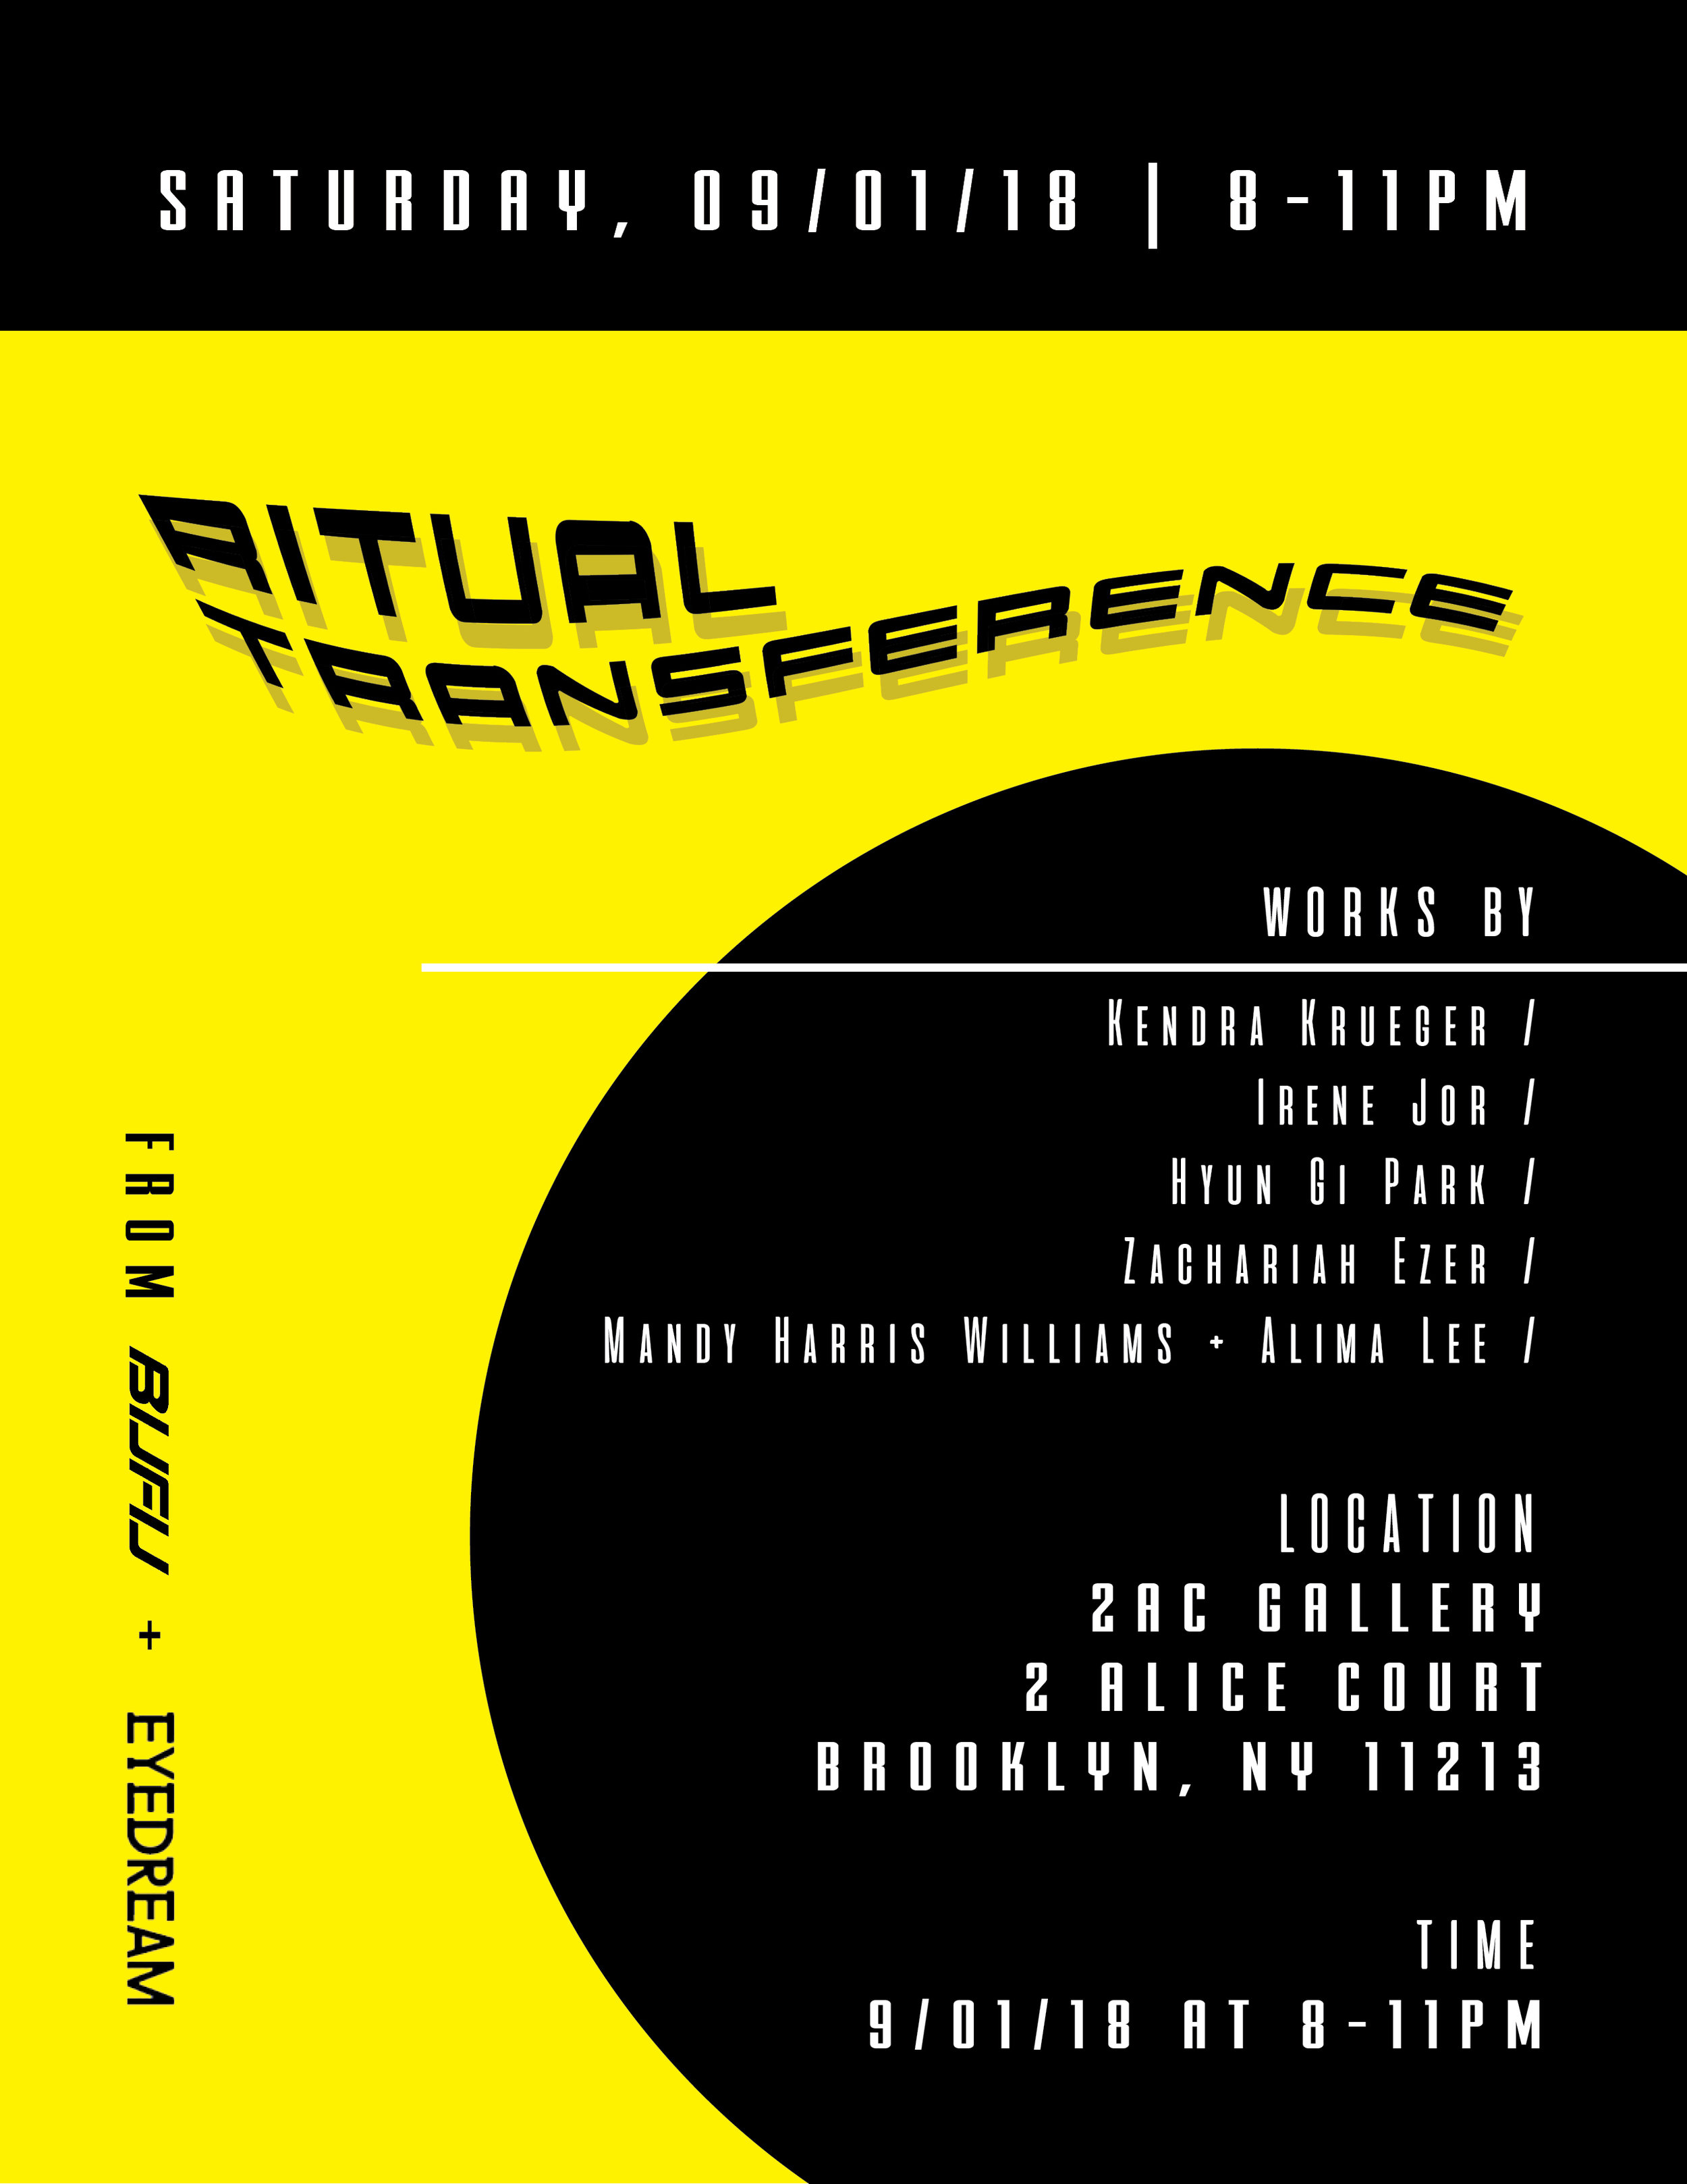 Ritual Transference - RITUAL TRANSFERENCE☁️☁️☁️☁️☁️☁️☁️☁️☁️☁️☁️☁️☁️☁️☁️☁️☁️☁️☁️☁️☁️☁️☁️☁️@@@ 2AC Gallery2 Alice CourtBrooklyn, NY☁️☁️☁️☁️☁️☁️☁️☁️☁️☁️☁️☁️☁️☁️☁️☁️☁️☁️☁️☁️☁️☁️☁️☁️INSTALLATION // WORKSHOP // OPEN SPACEWith Eyedream Residents Cohort 4Kendra Krueger, Mandy Papoose & Alima Lee, Zach Ezer, Hyun Gi Park, Irene Jor8-11PM☁️☁️☁️☁️☁️☁️☁️☁️☁️☁️☁️☁️☁️☁️☁️☁️☁️☁️☁️☁️☁️☁️☁️☁️